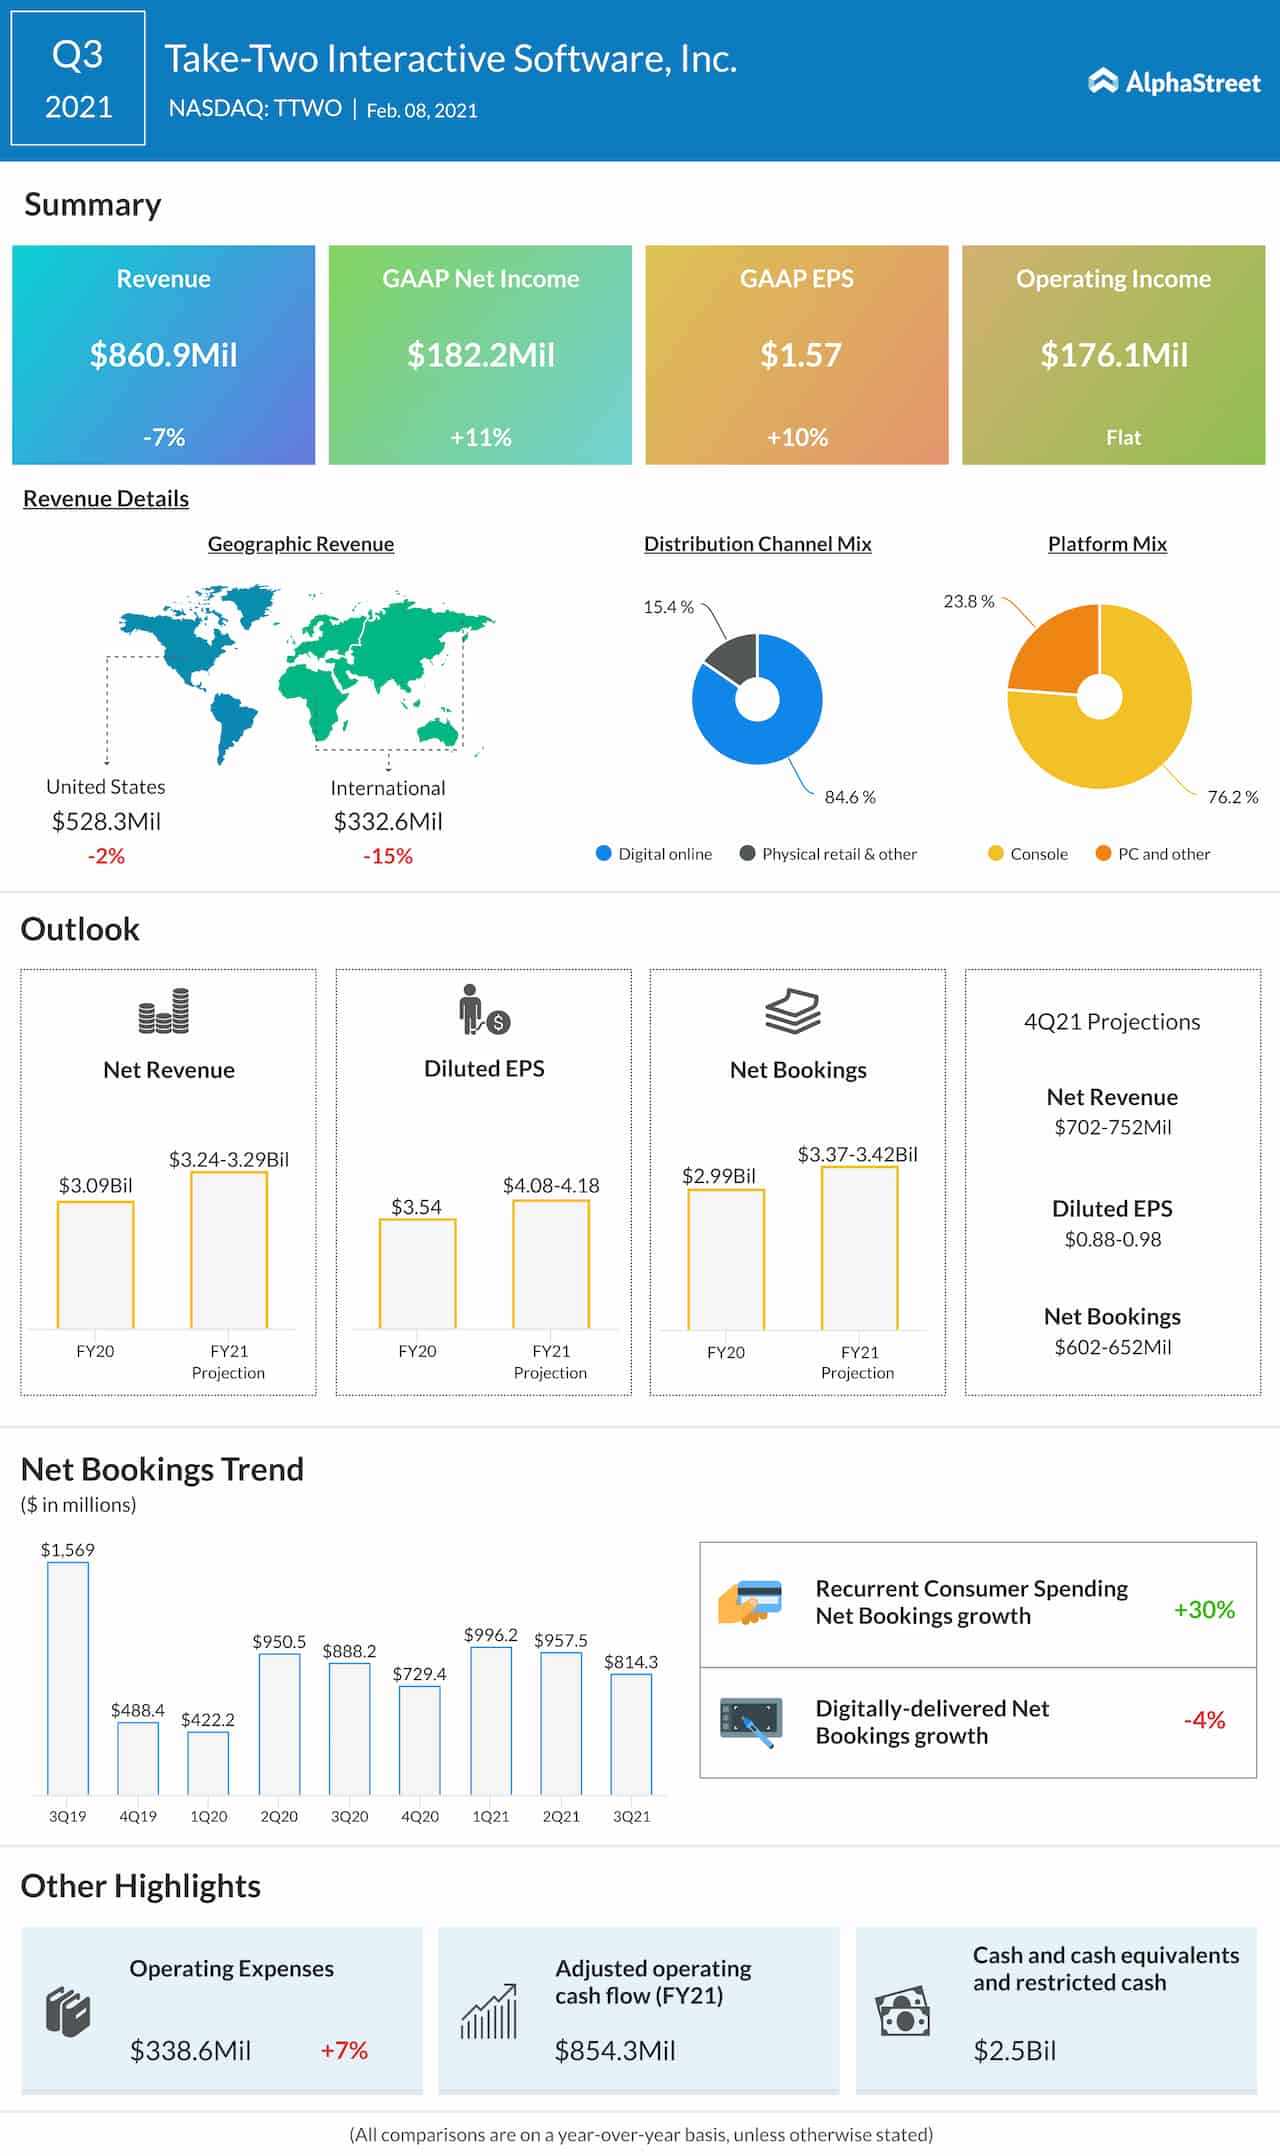 Take-Two Interactive Software Q3 2021 earnings infographic